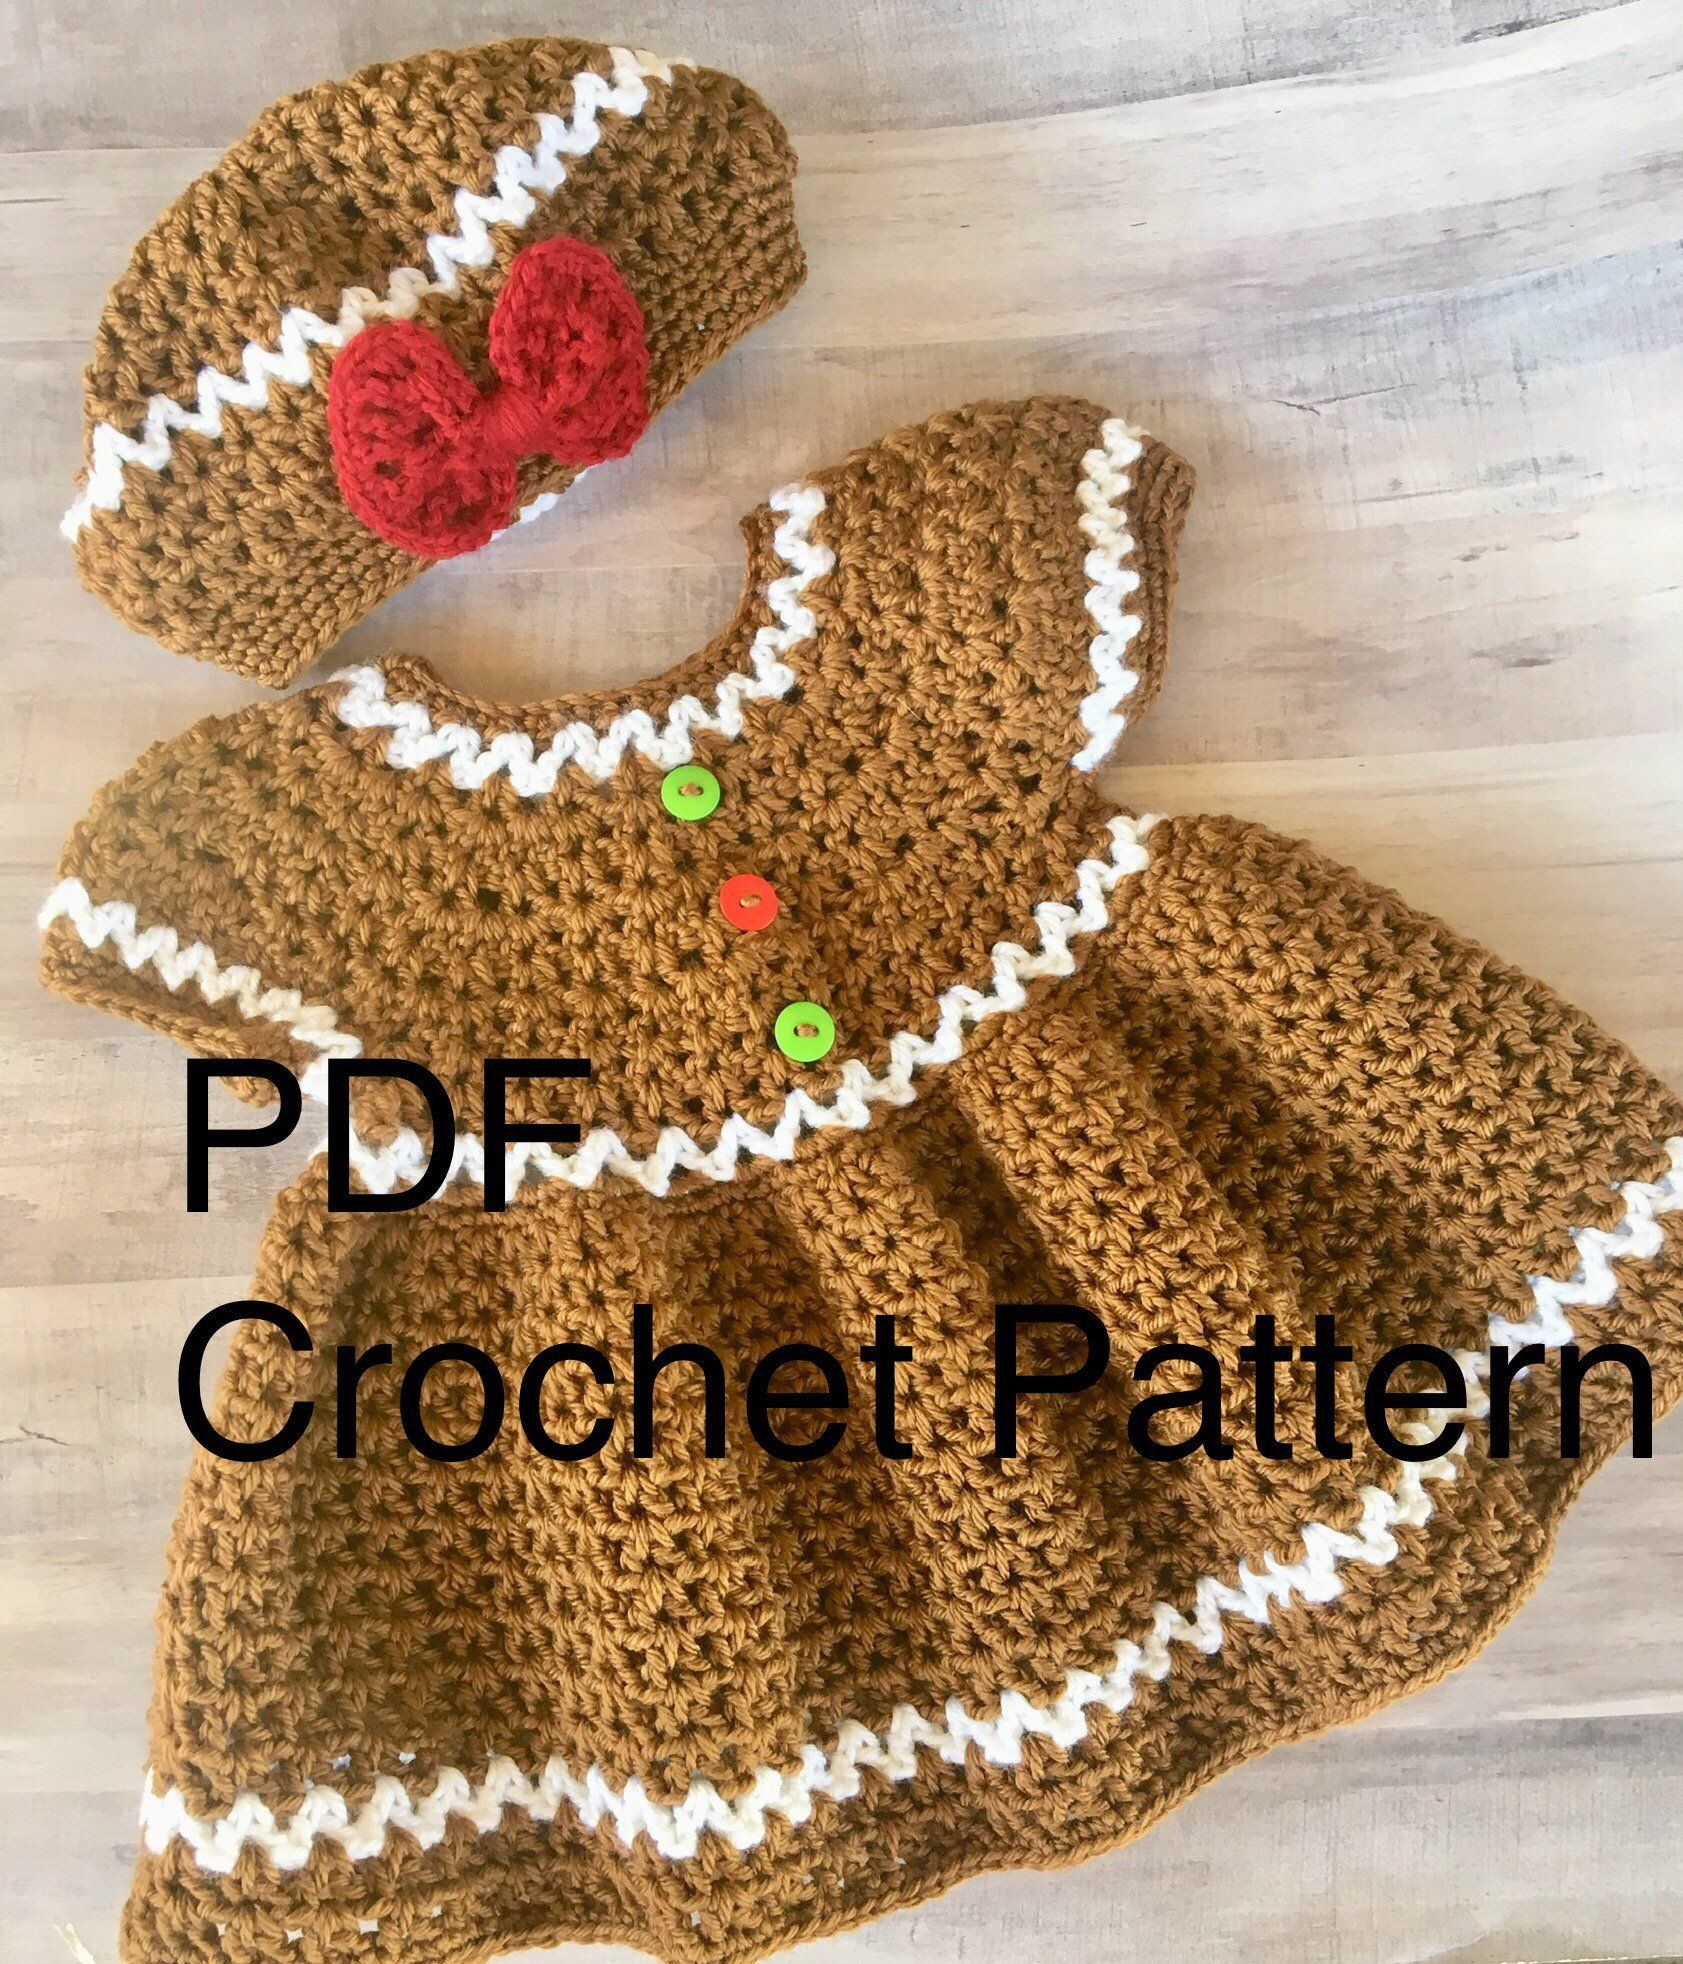 Find Your Next Project at CrochetKim.com!